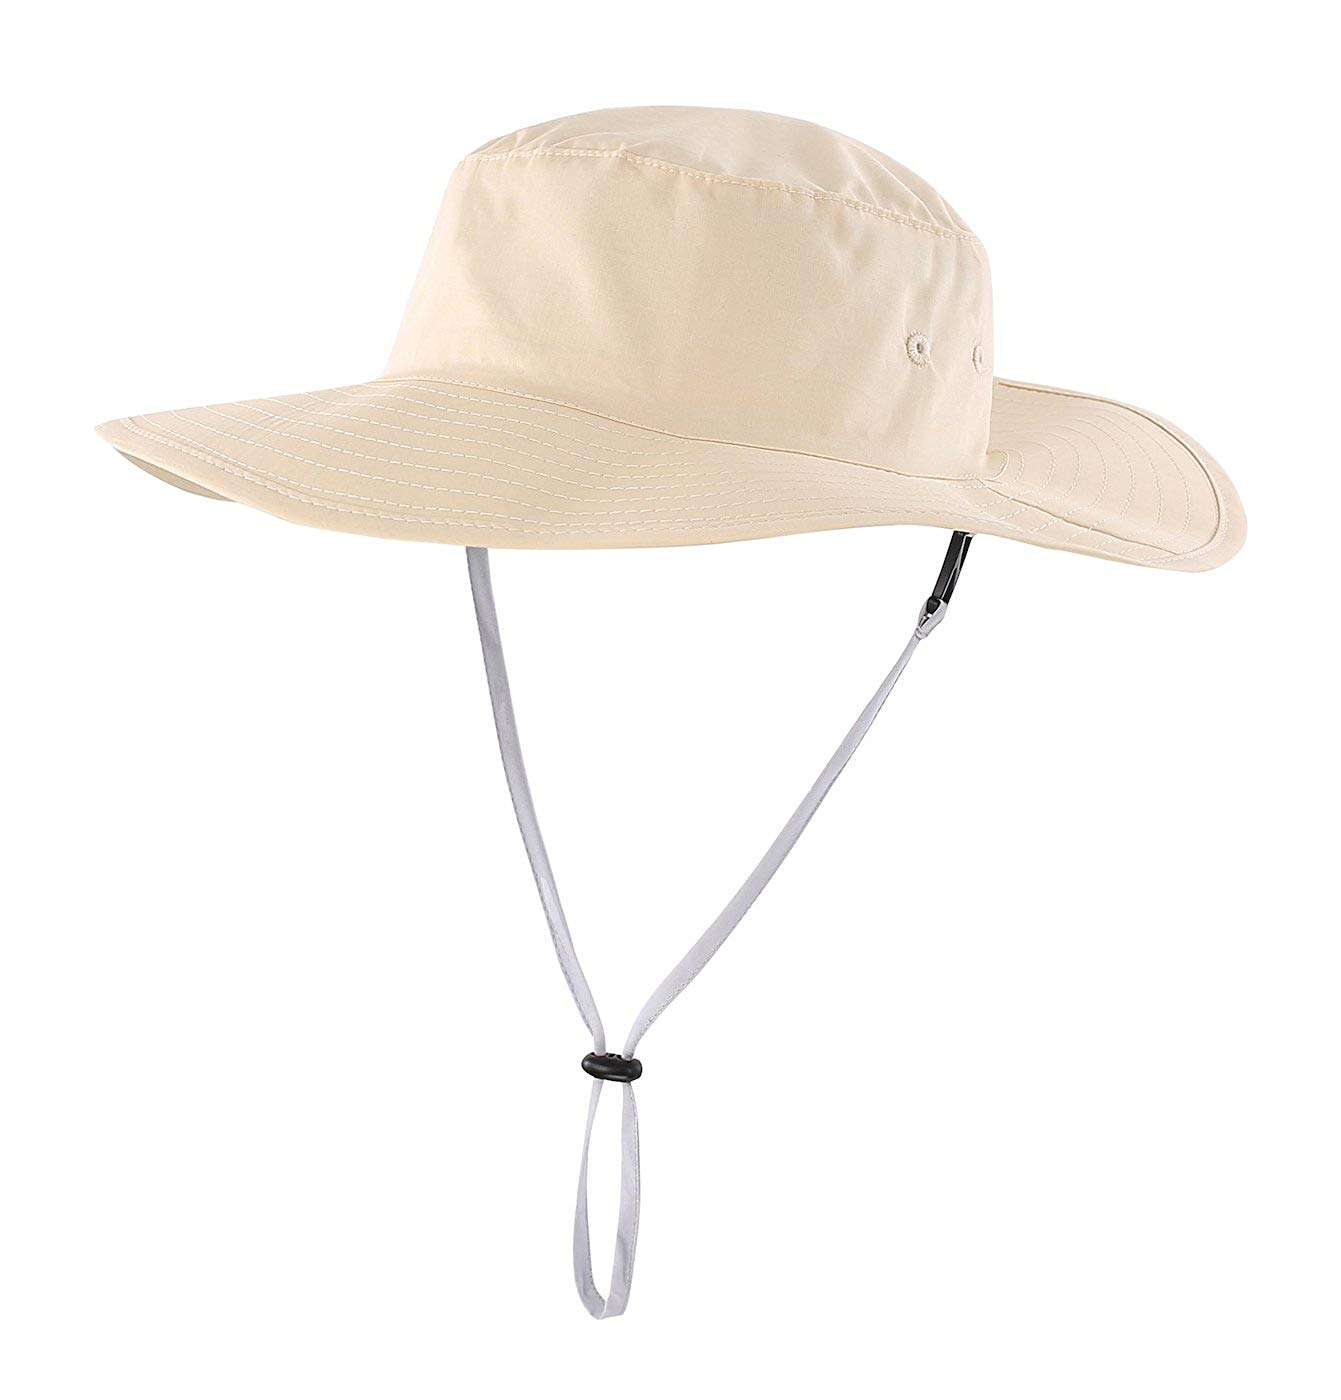 37d642ee3d789 Get Quotations · Home Prefer Kids Cool Cotton Bucket Hat UPF50+ Wide Brim Sun  Protection Play Hat